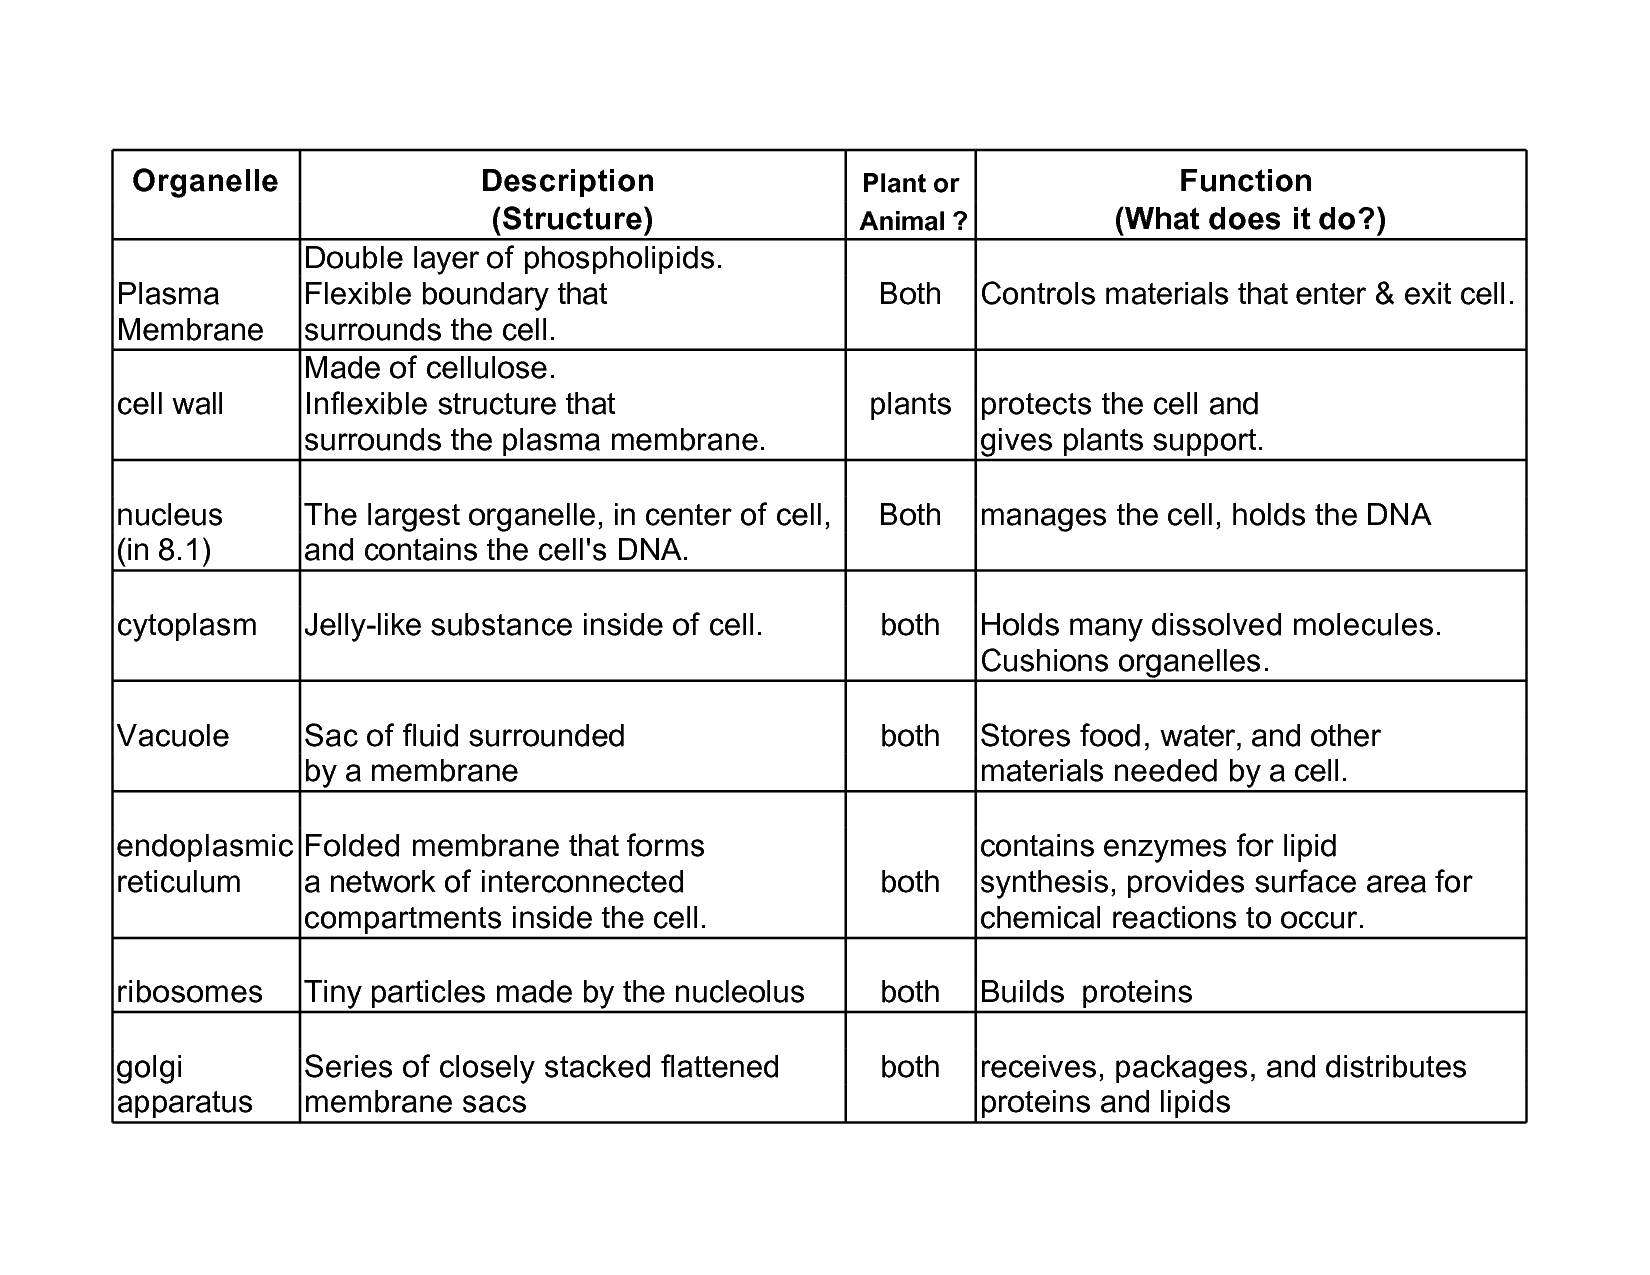 Cellular Organelle Structure And Function Essay Sample